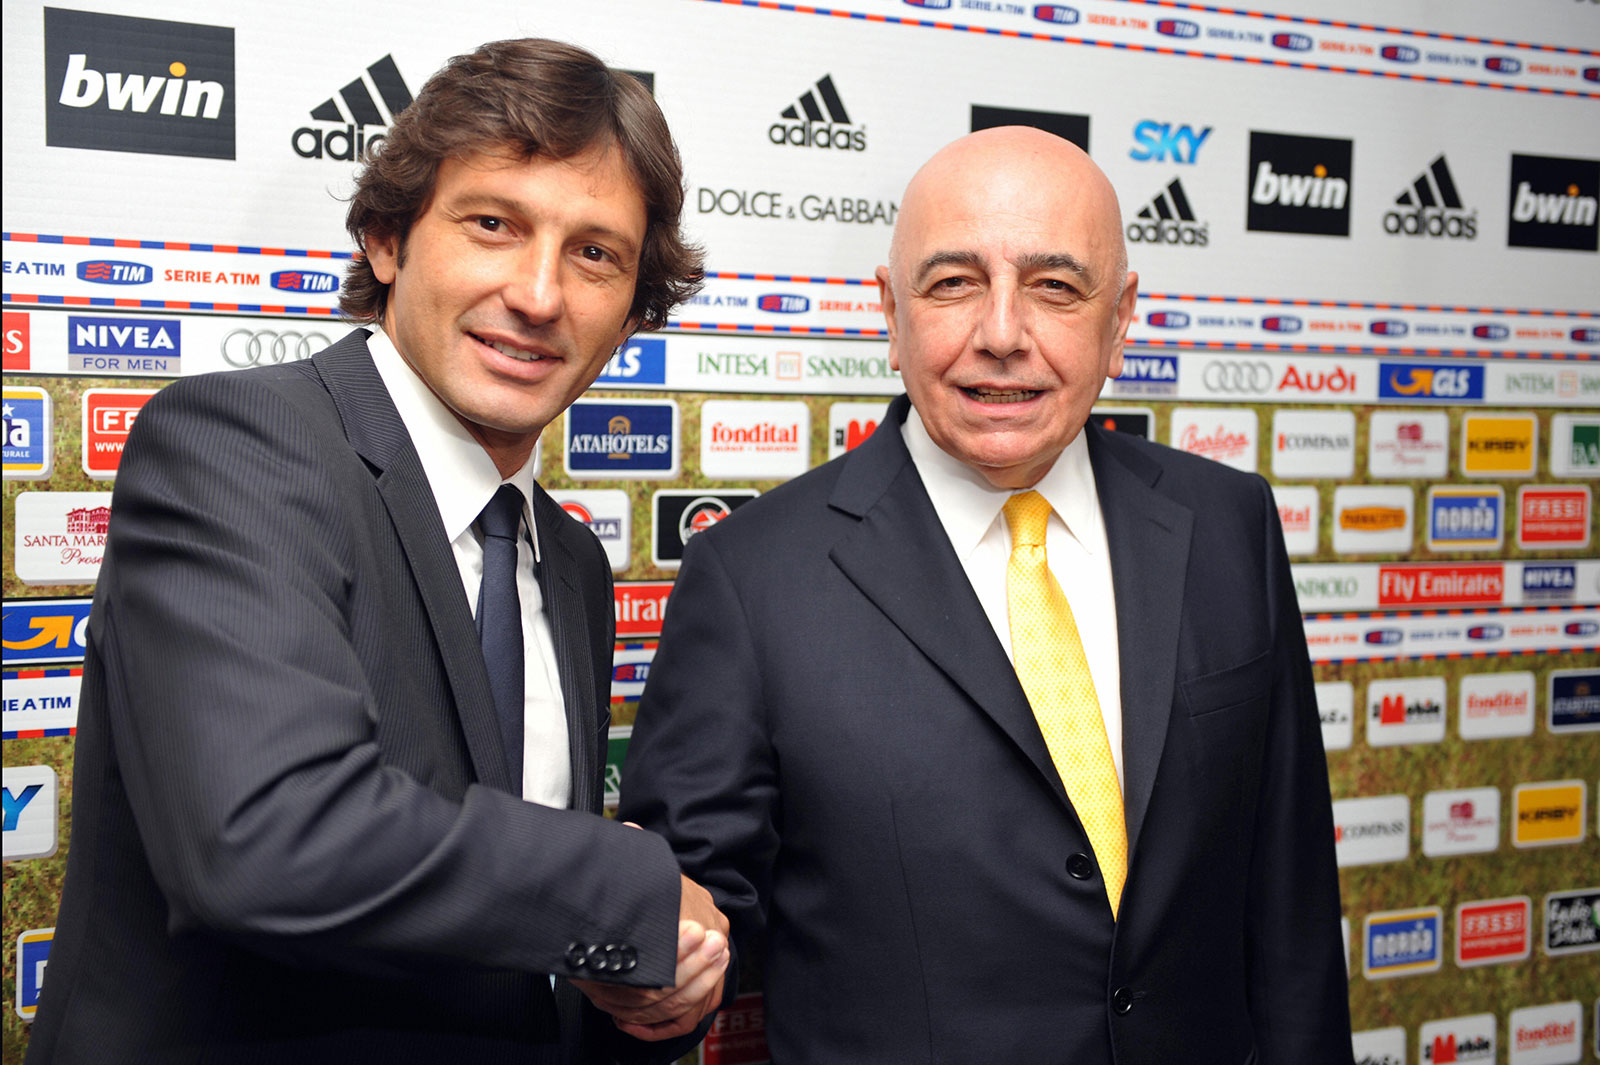 Leonardo and Adriano Galliani at Stadio San Siro on June 1, 2009. (GIUSEPPE CACACE/AFP/Getty Images)